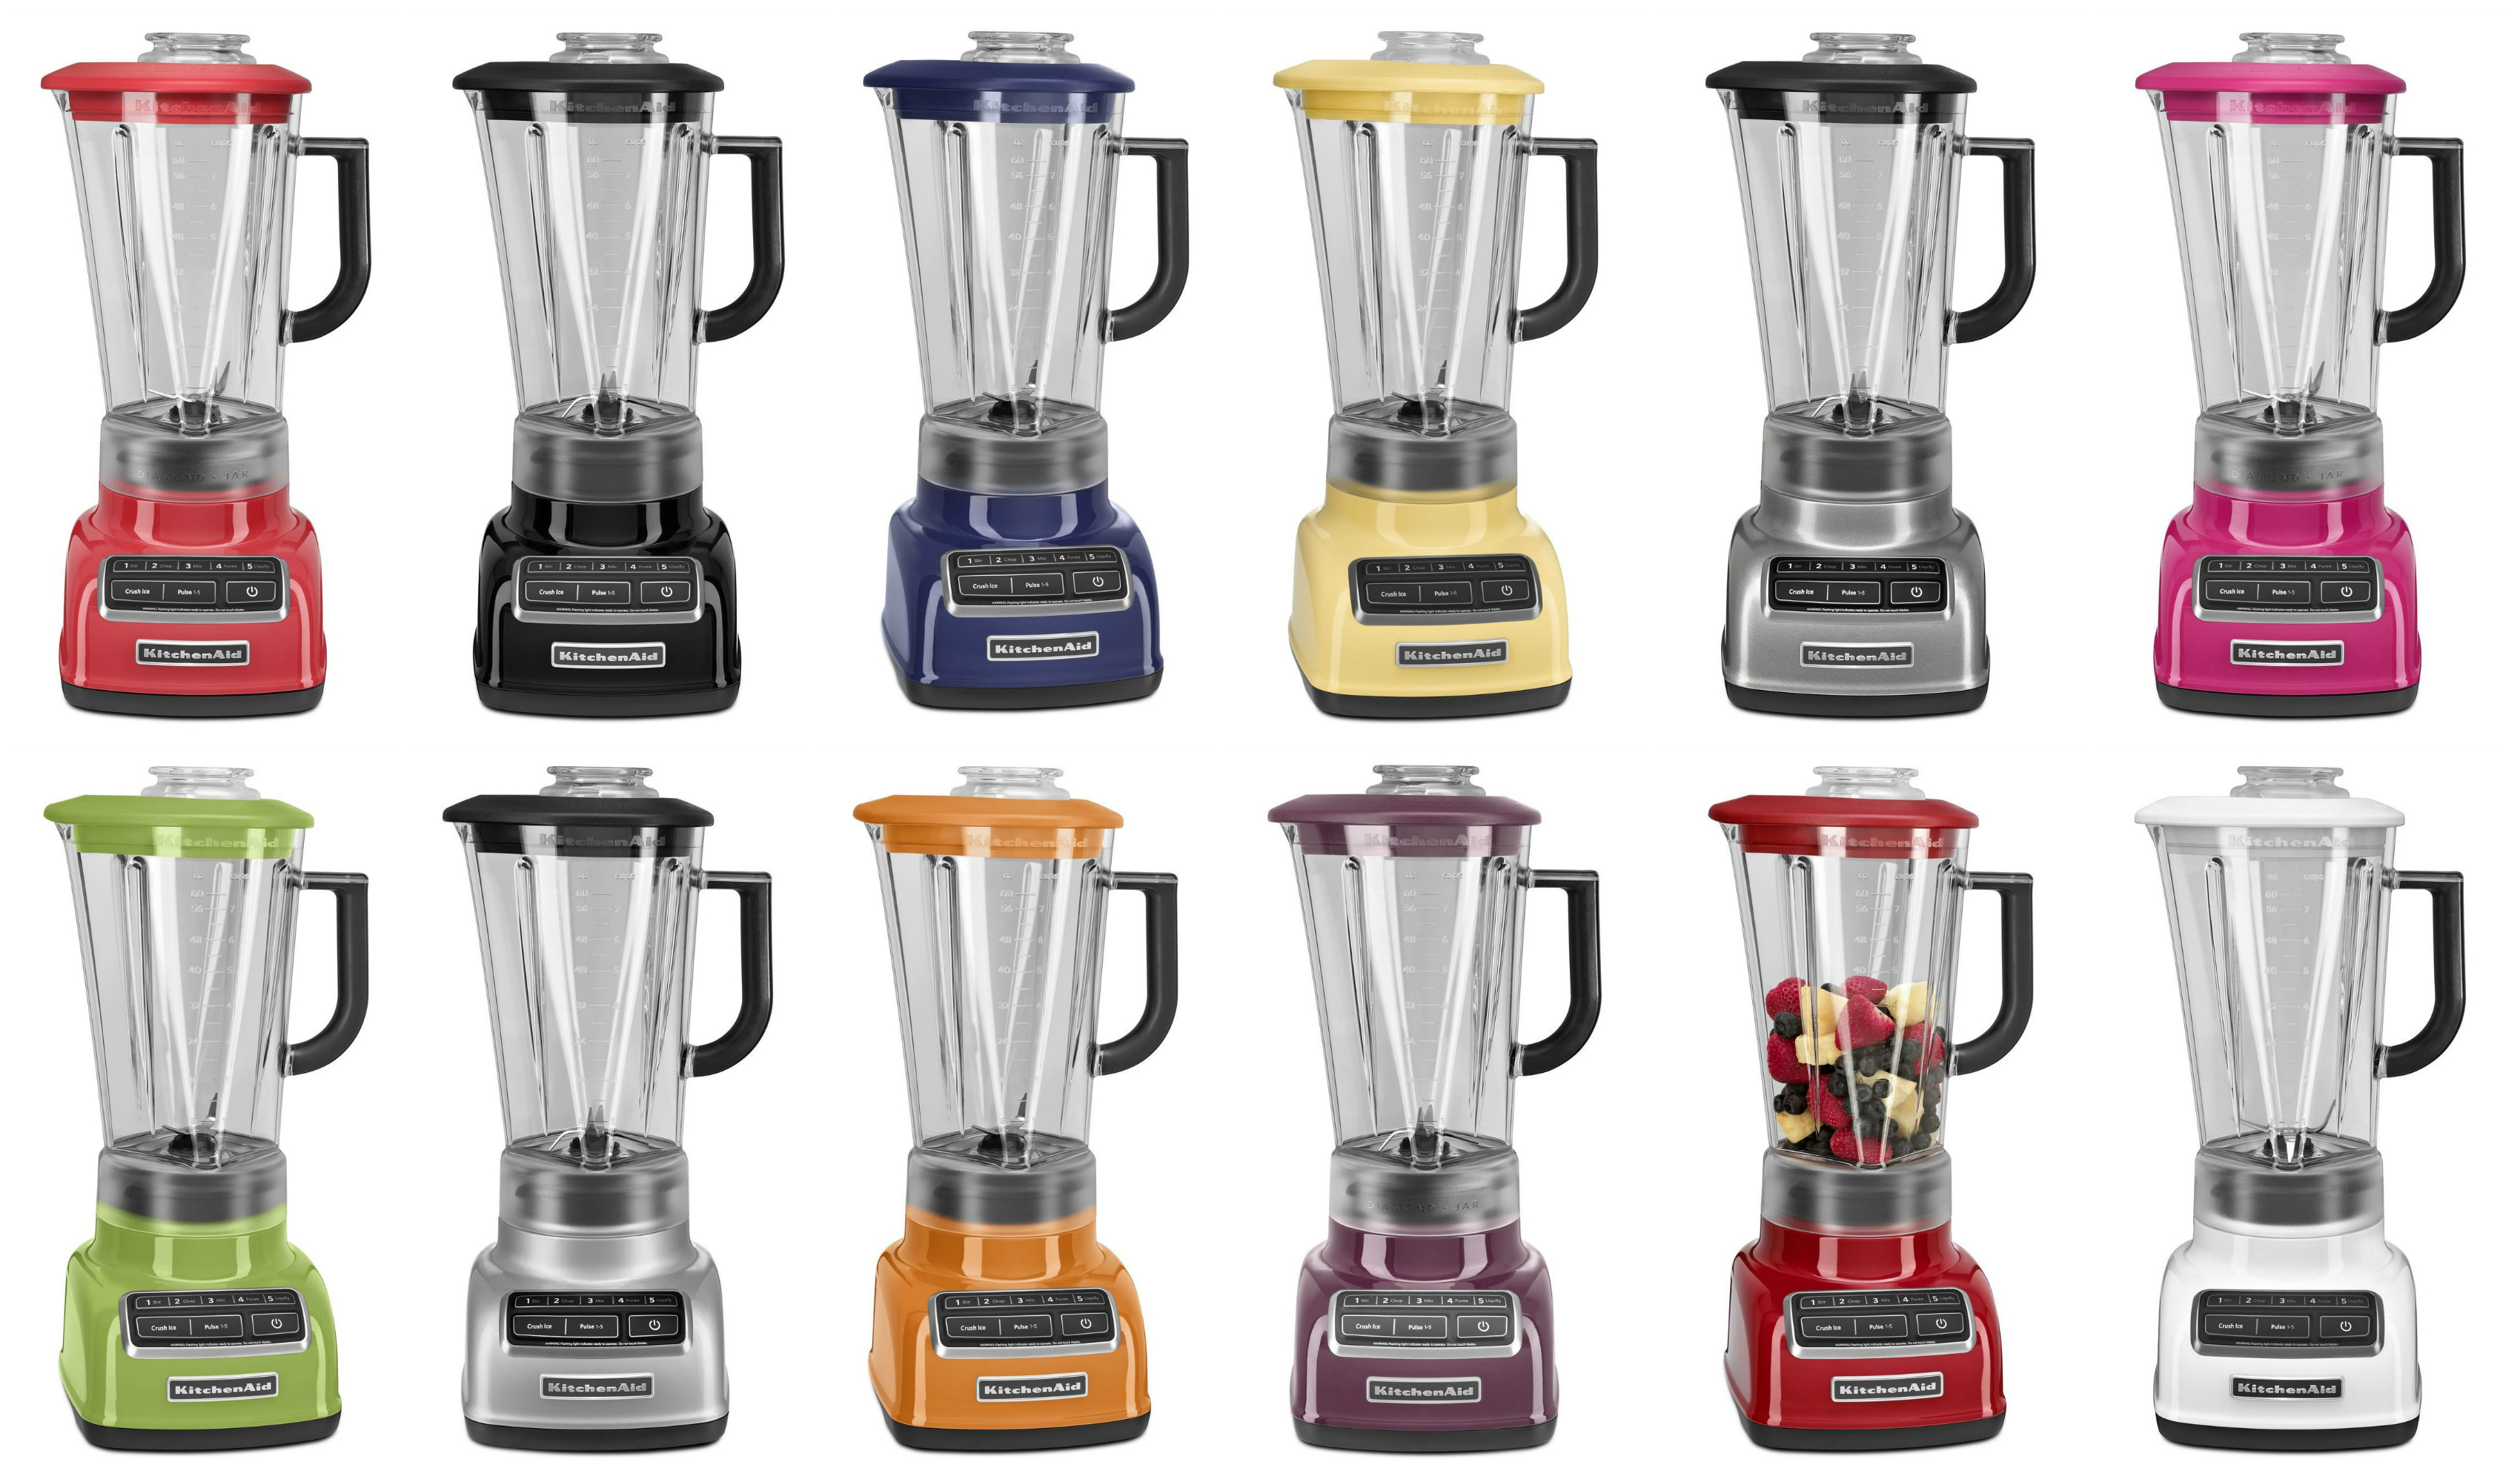 Kitchenaid 5 Speed Blender kitchenaid 5-speed diamond blender review - cook logic